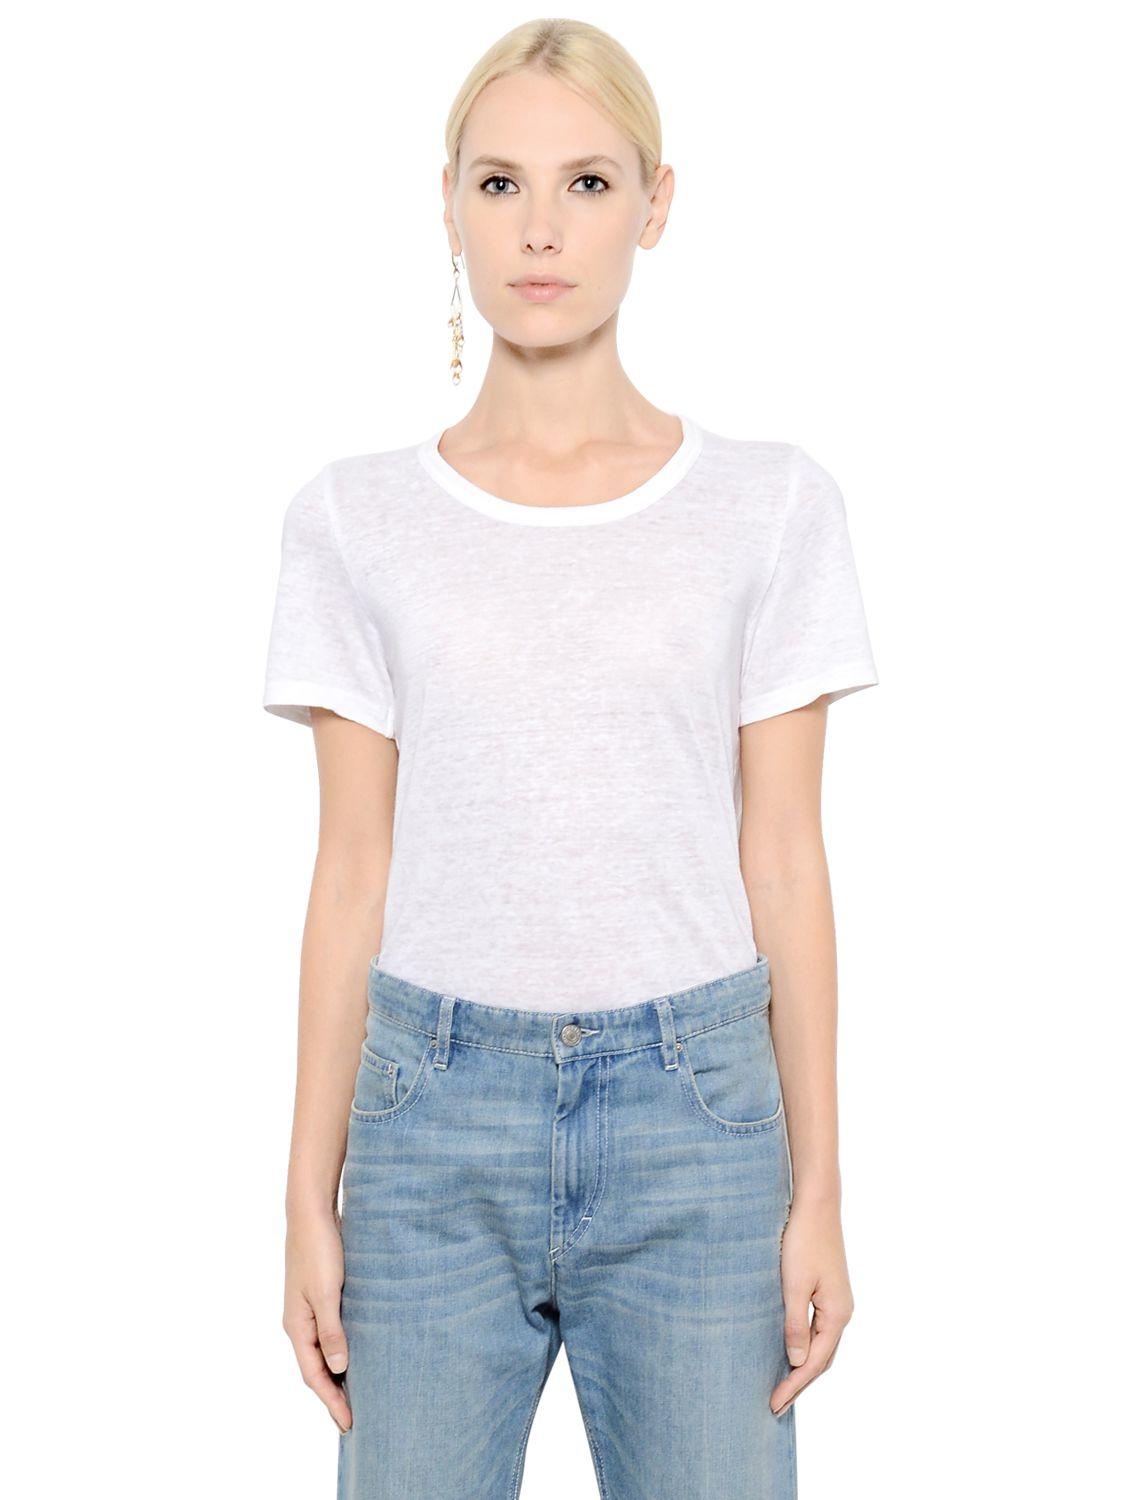 Toile isabel marant linen jersey t shirt in white lyst for Isabel marant t shirt sale